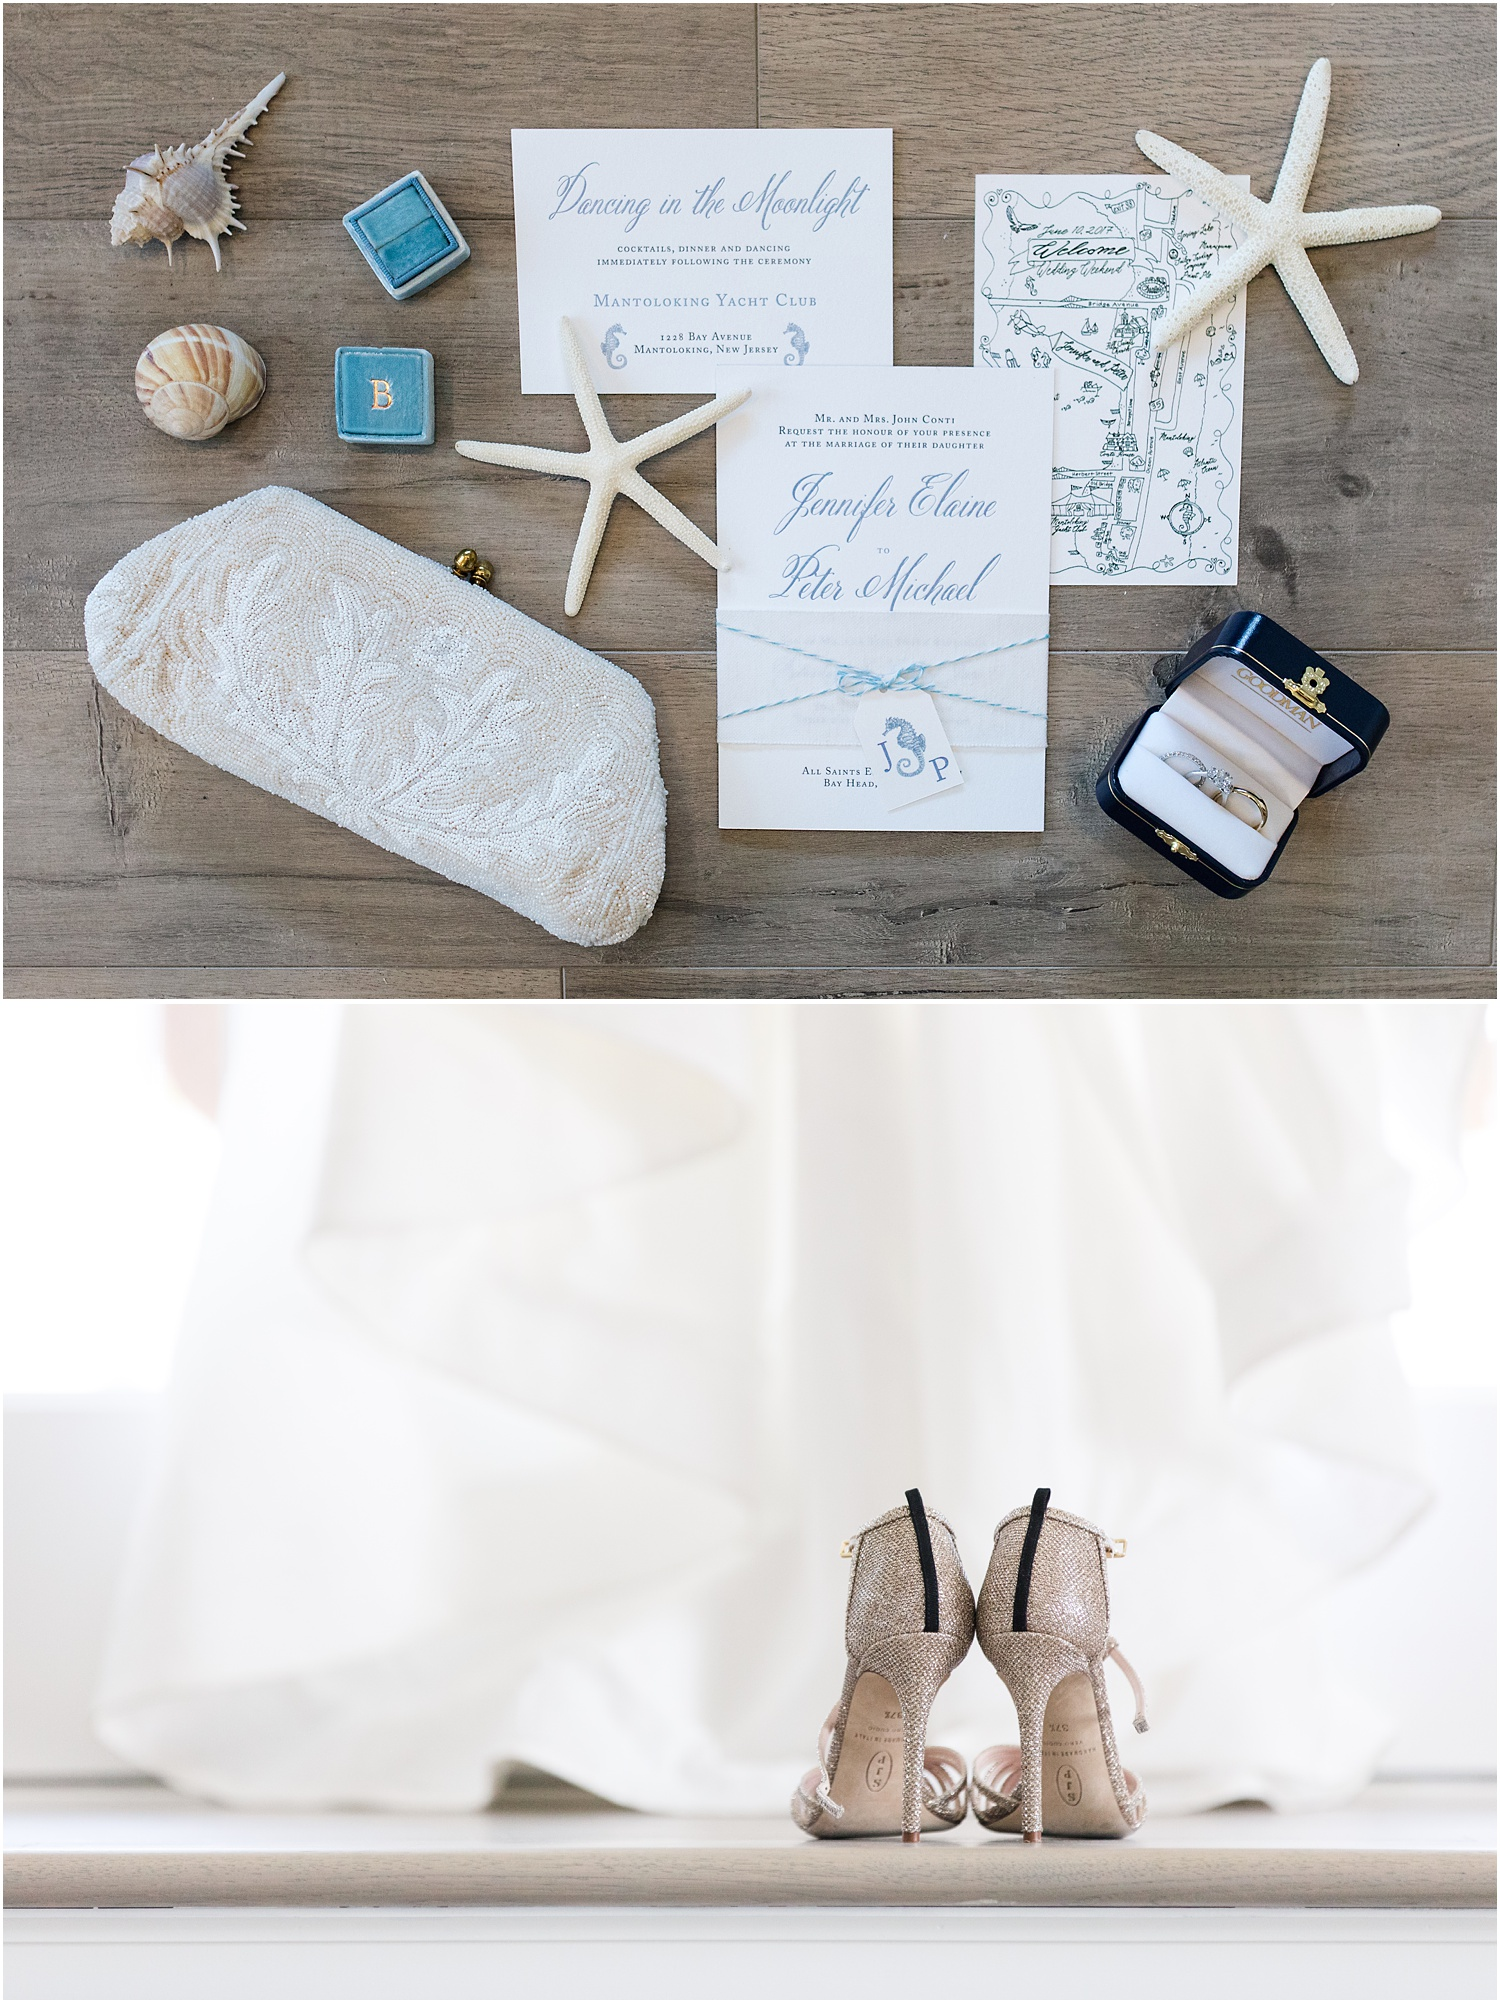 beach themed invitations and bridal accessories for seashore chic wedding in Mantoloking, NJ.